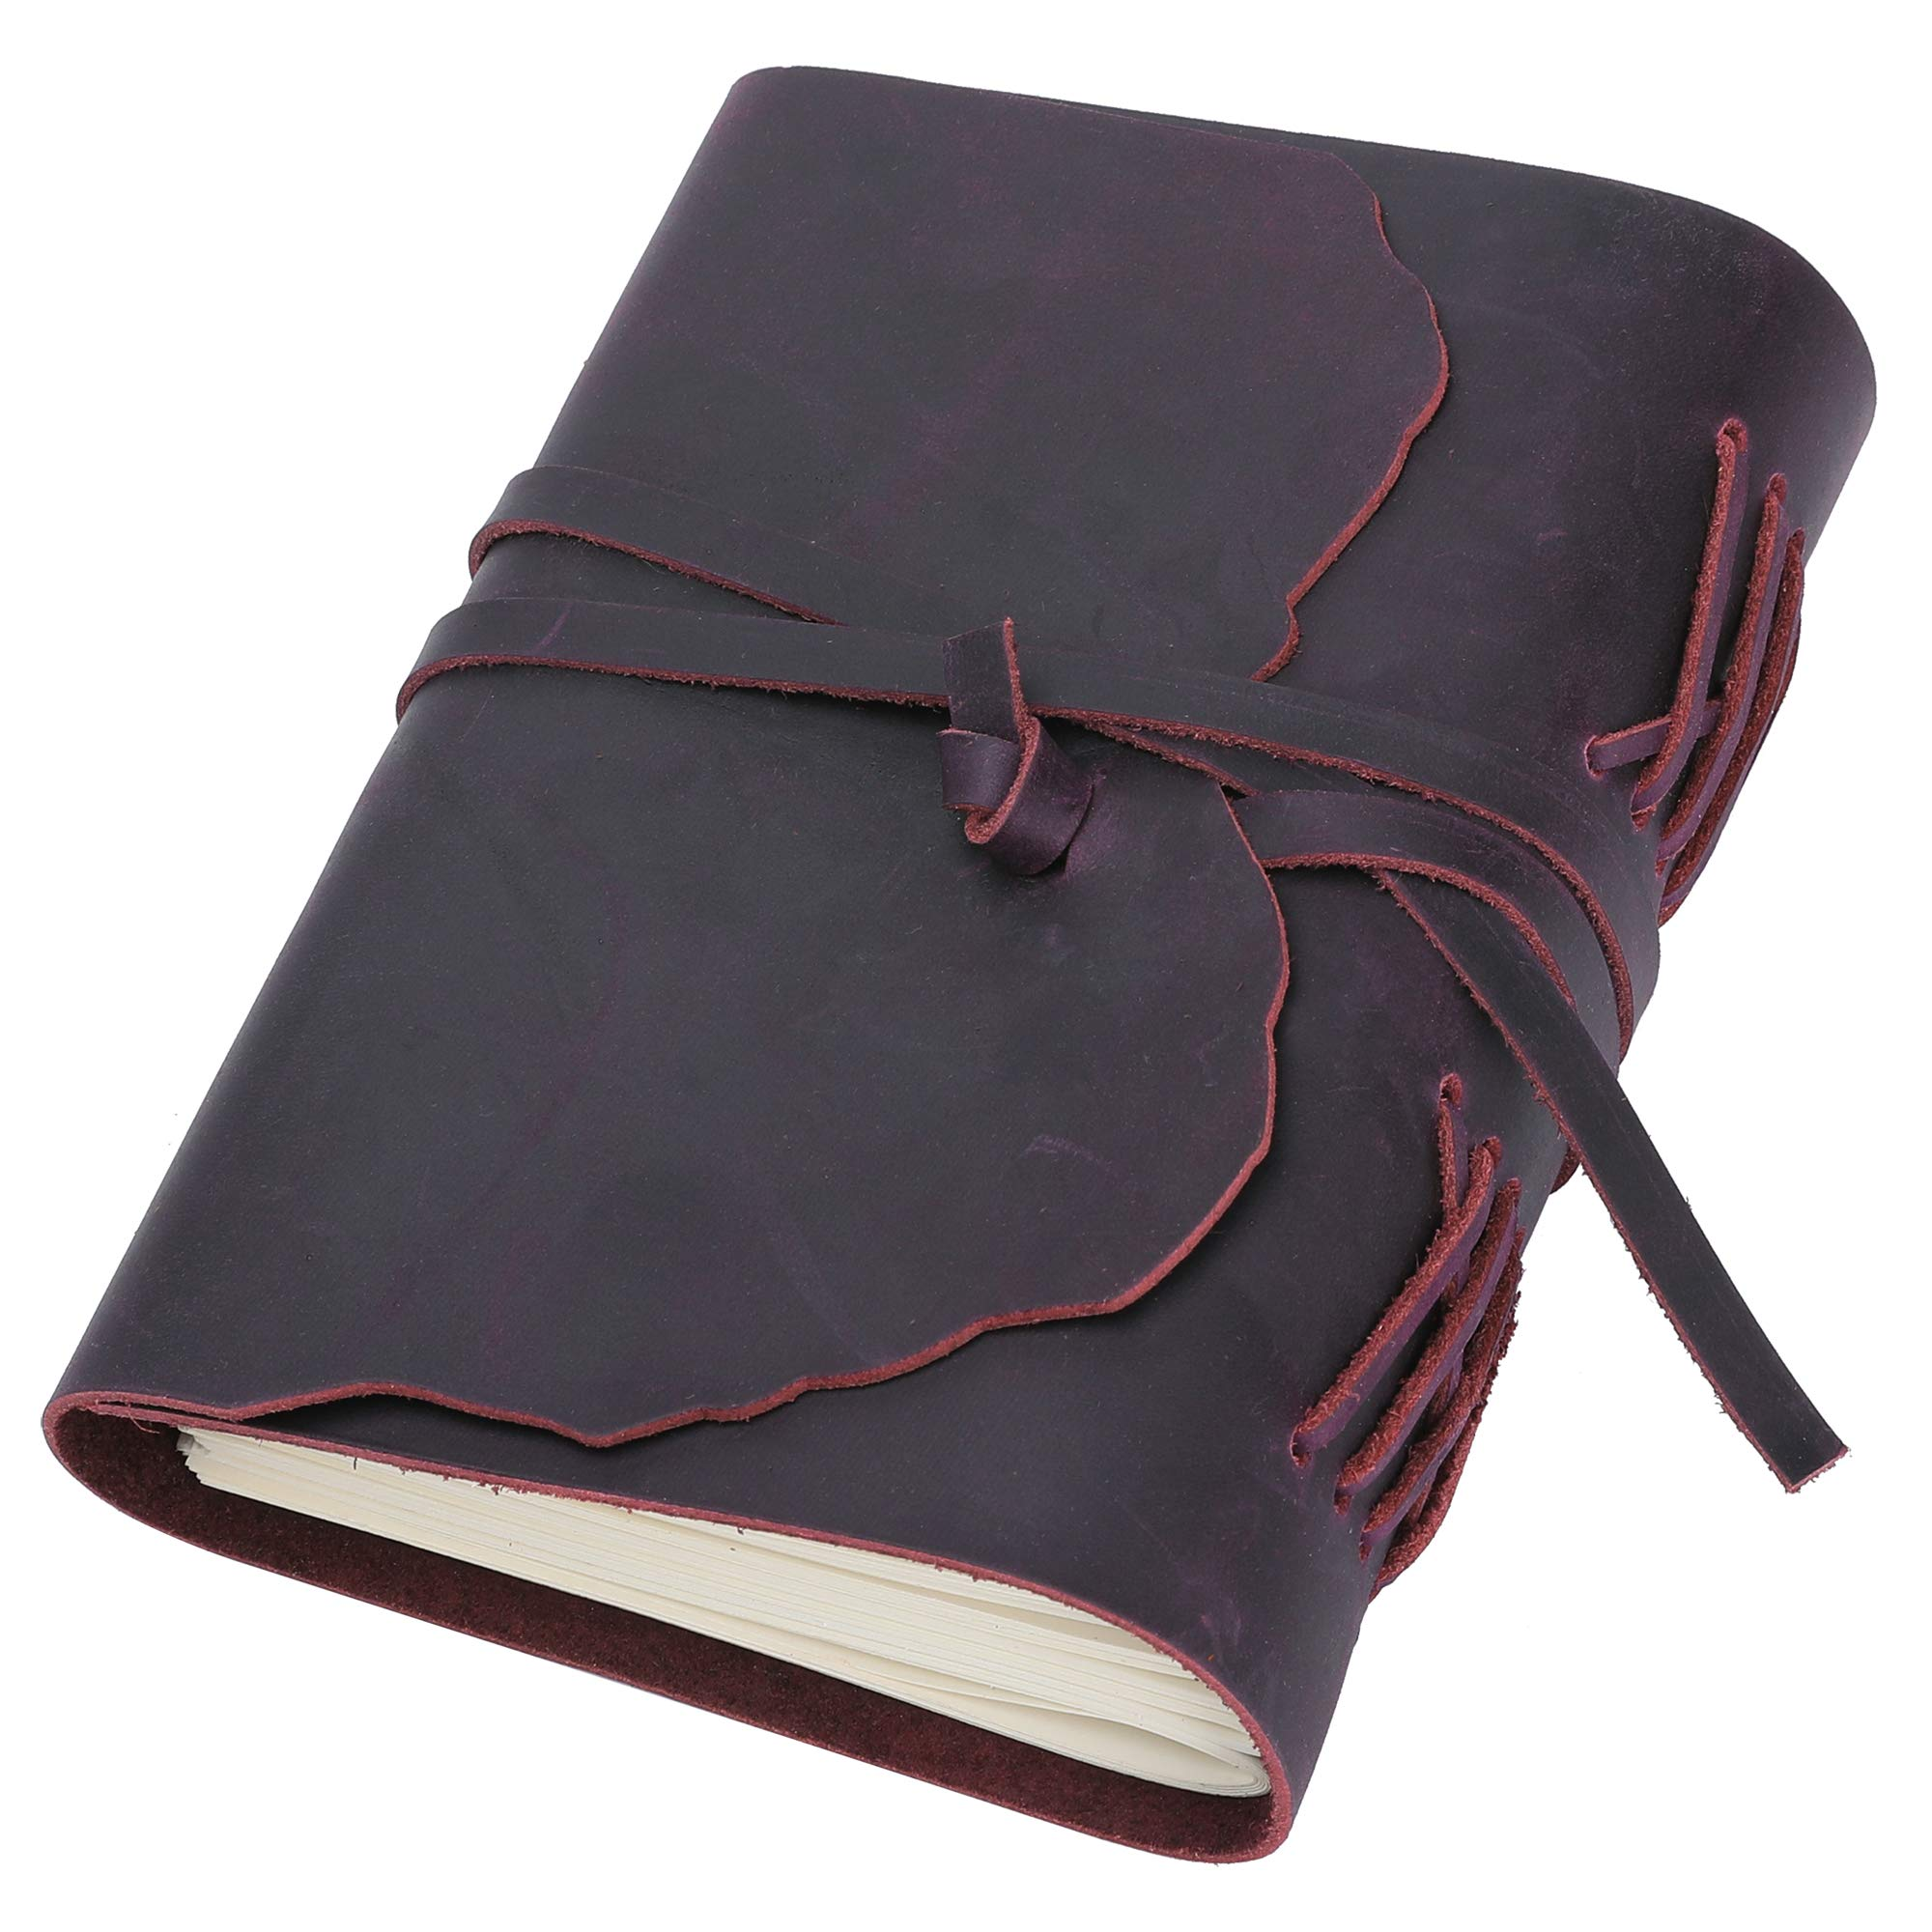 Jagucho Leather Journal Writing Notebook for Men Women, Refillable Lined Pages, Travel Diary Bound Journals Cover, Antique Vintage Books for Writers, Poets (Dark purple 2)